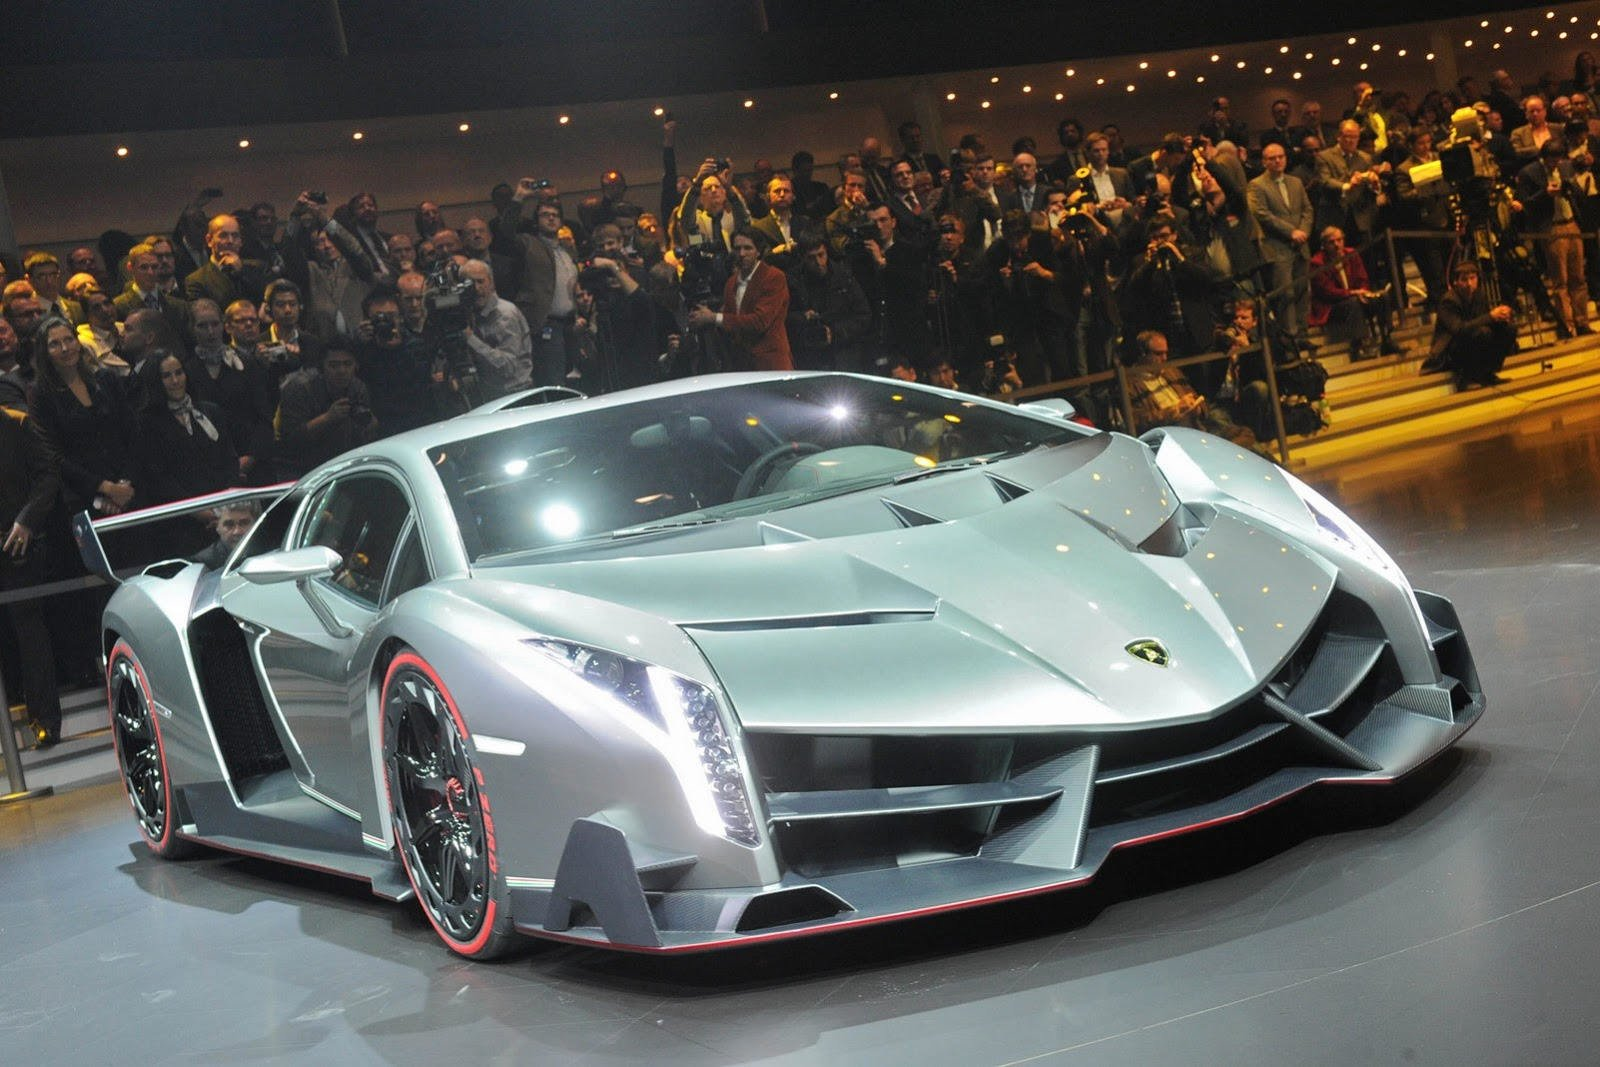 Latest The New Lamborghini Sports Cars Models Wallpaper Pictures Free Download